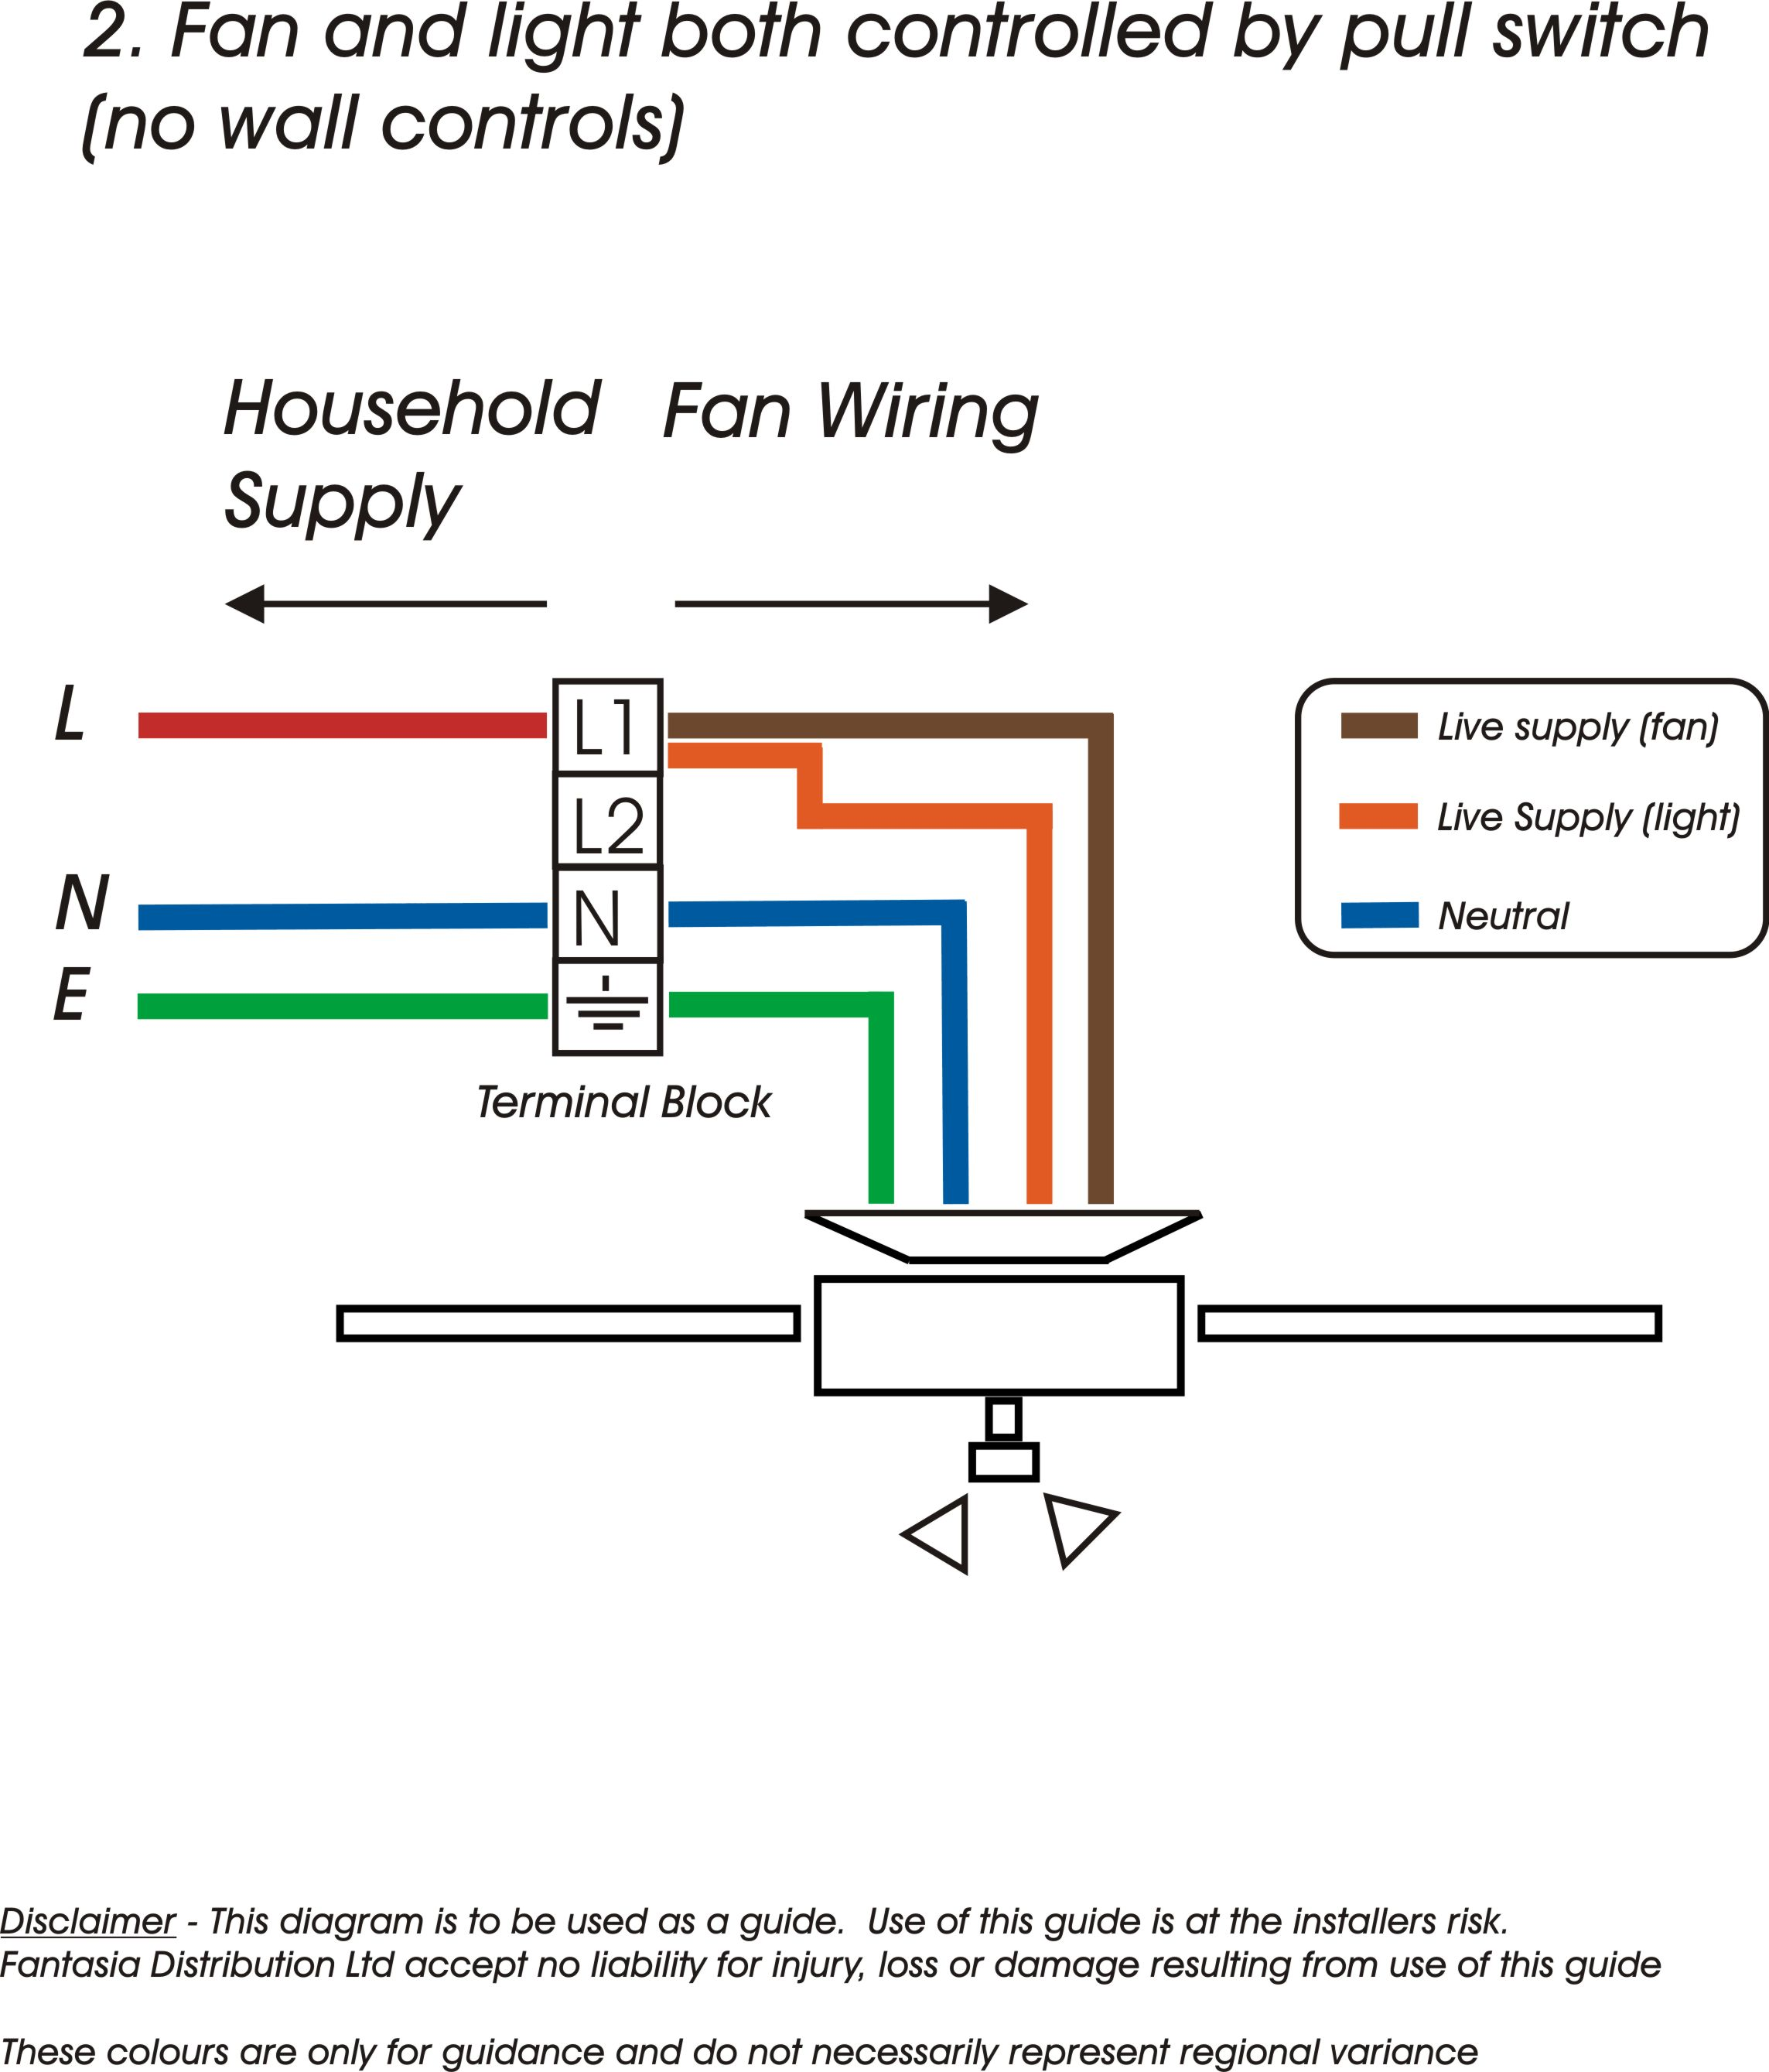 wiring ceiling fans 2?resize=800%2C937 hampton bay ceiling fan motor wiring diagram integralbook com hampton bay ceiling fan wiring diagram red wire at bakdesigns.co